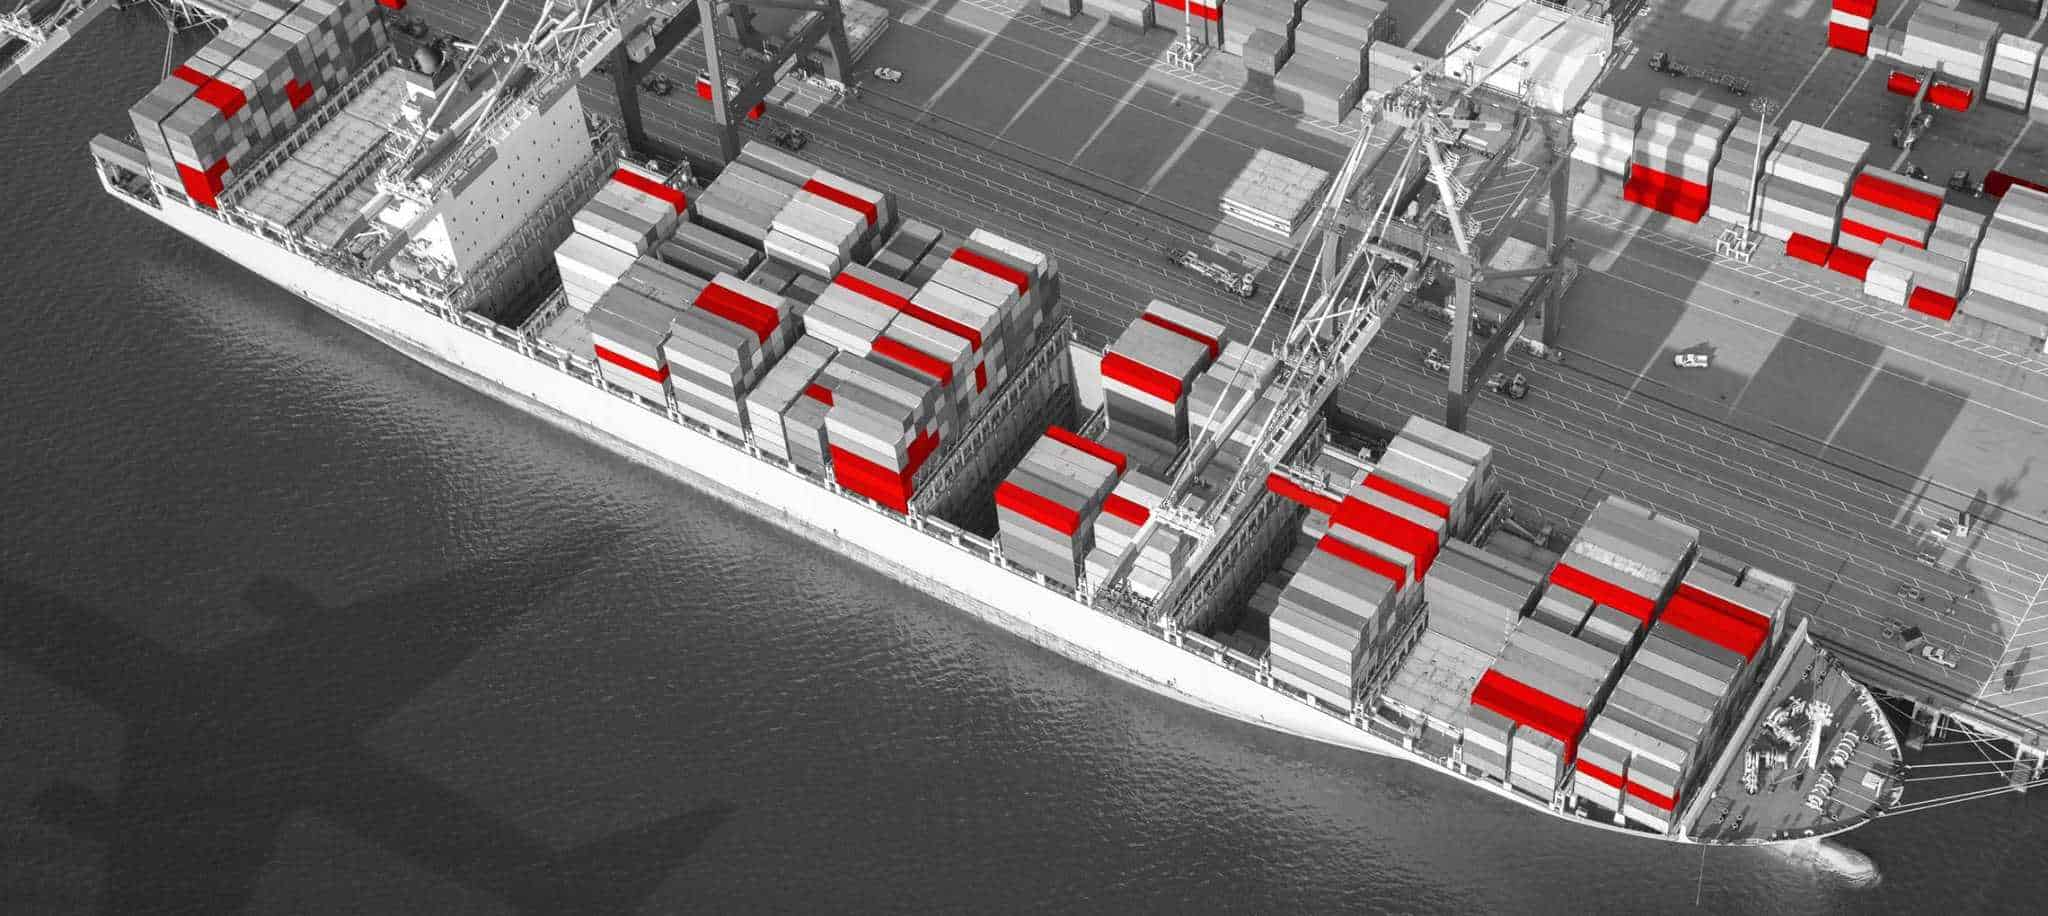 Loading shipping containers